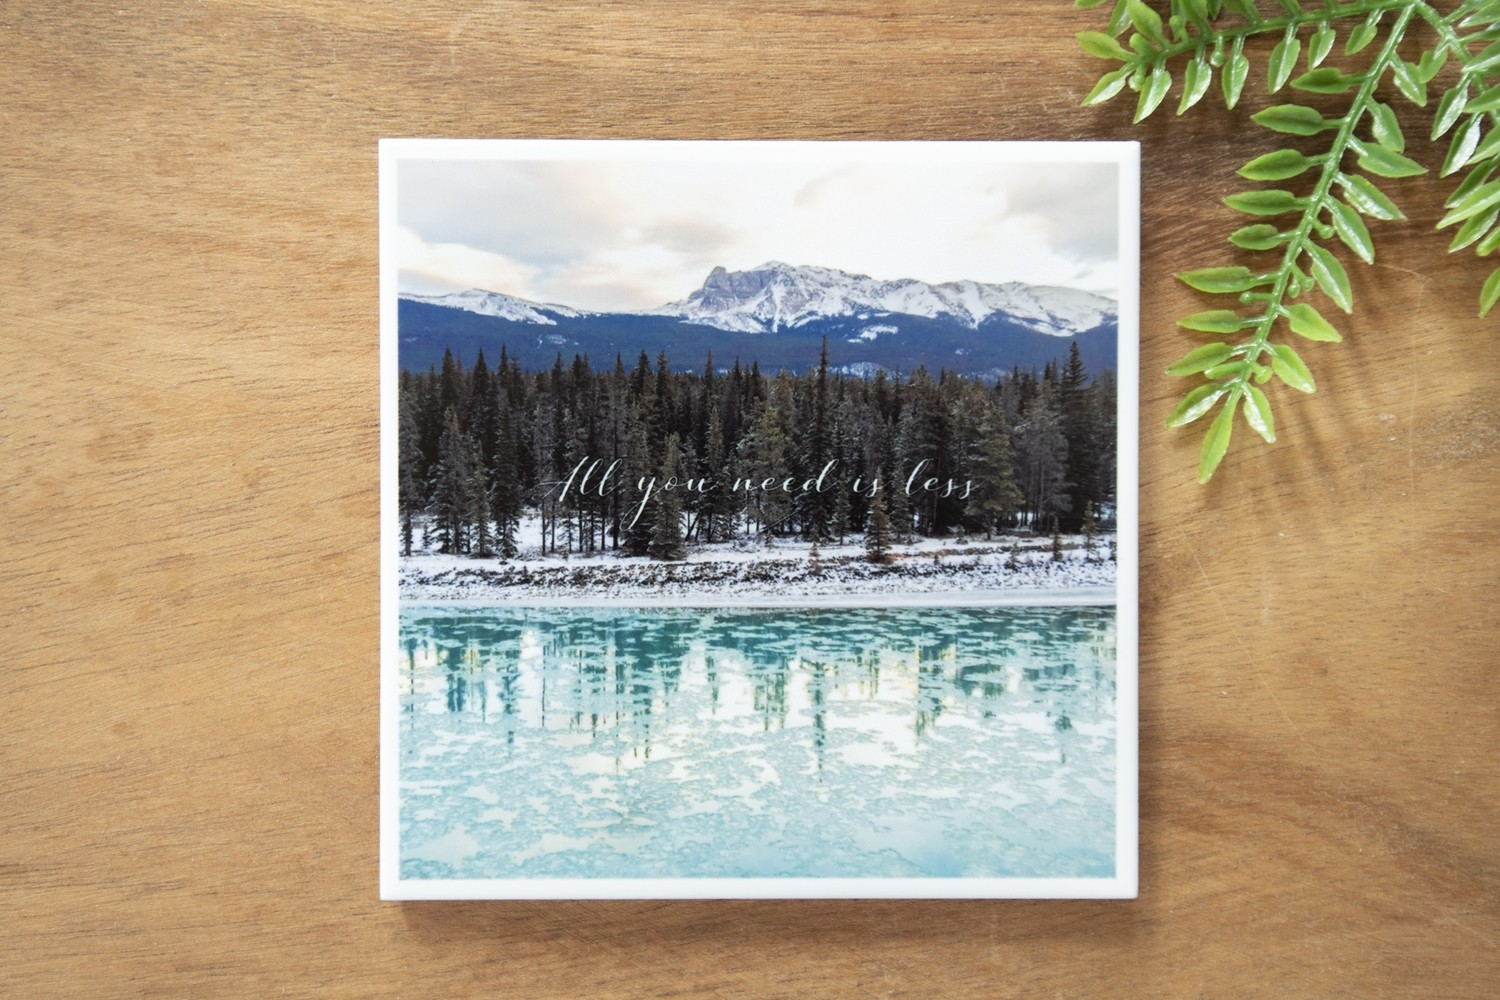 All You Need Is Less-Nature Photo Coaster